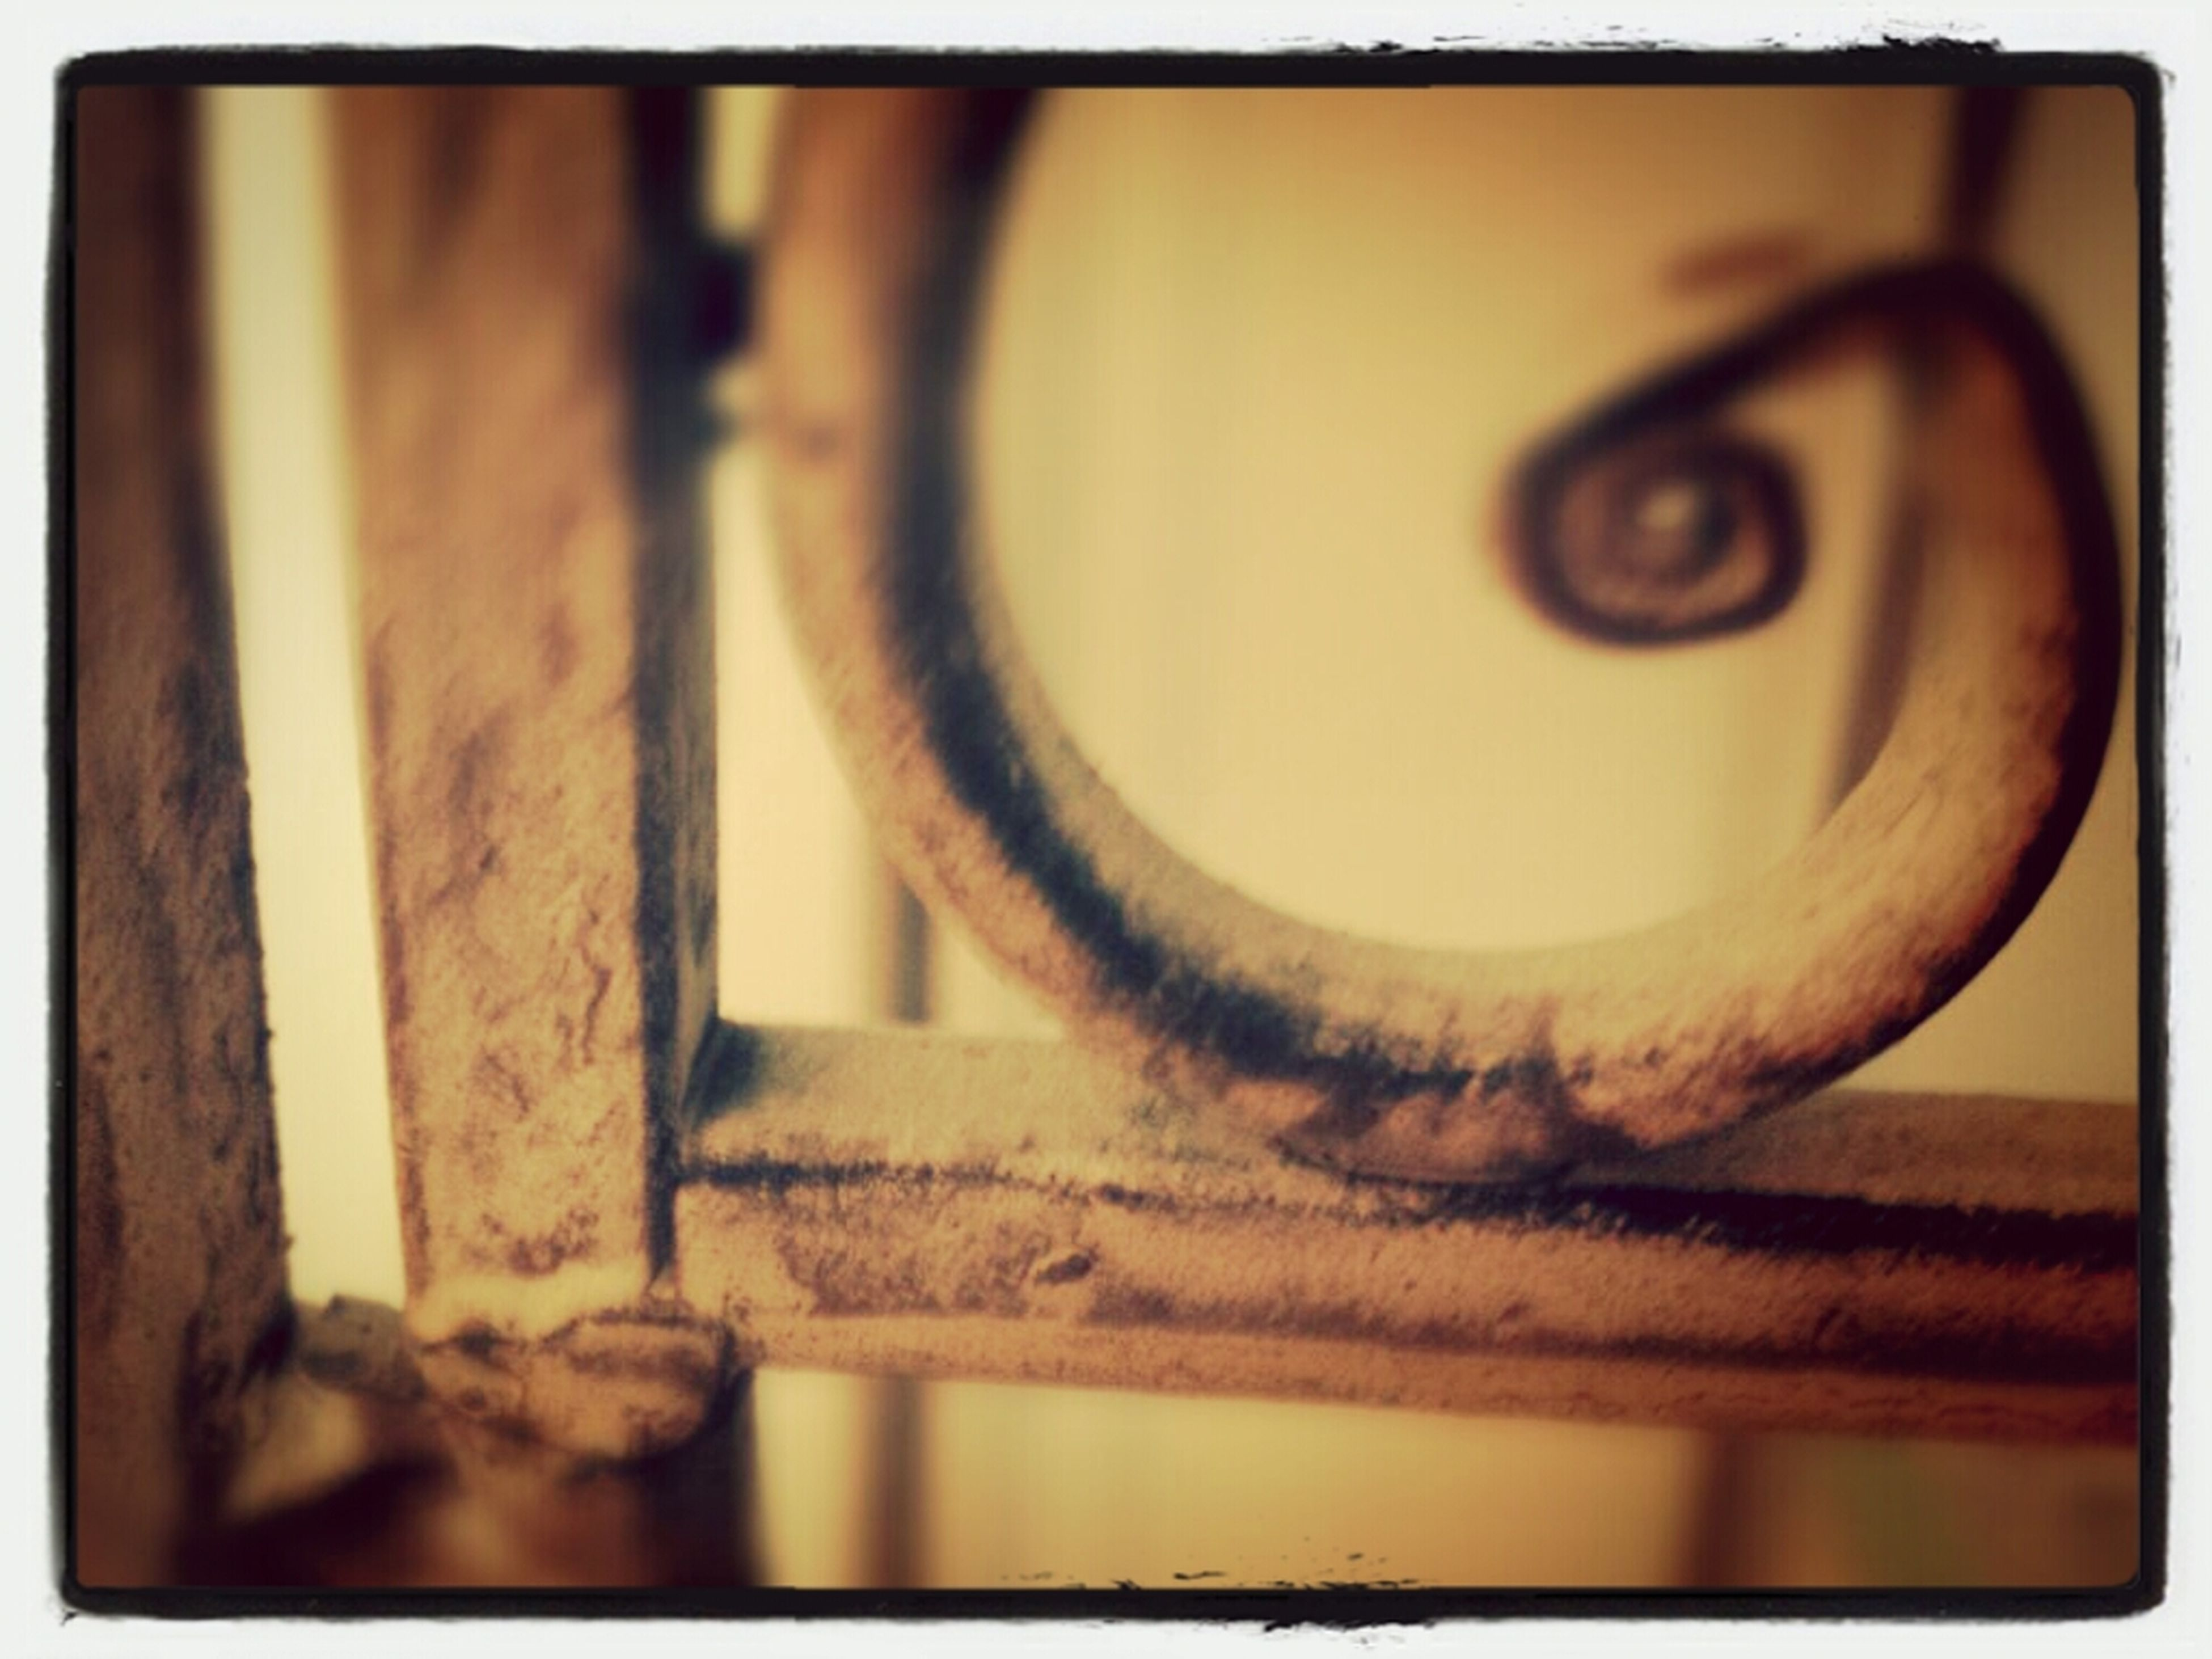 transfer print, auto post production filter, indoors, close-up, metal, focus on foreground, circle, metallic, no people, selective focus, still life, rusty, table, day, built structure, old, railing, shape, design, wood - material